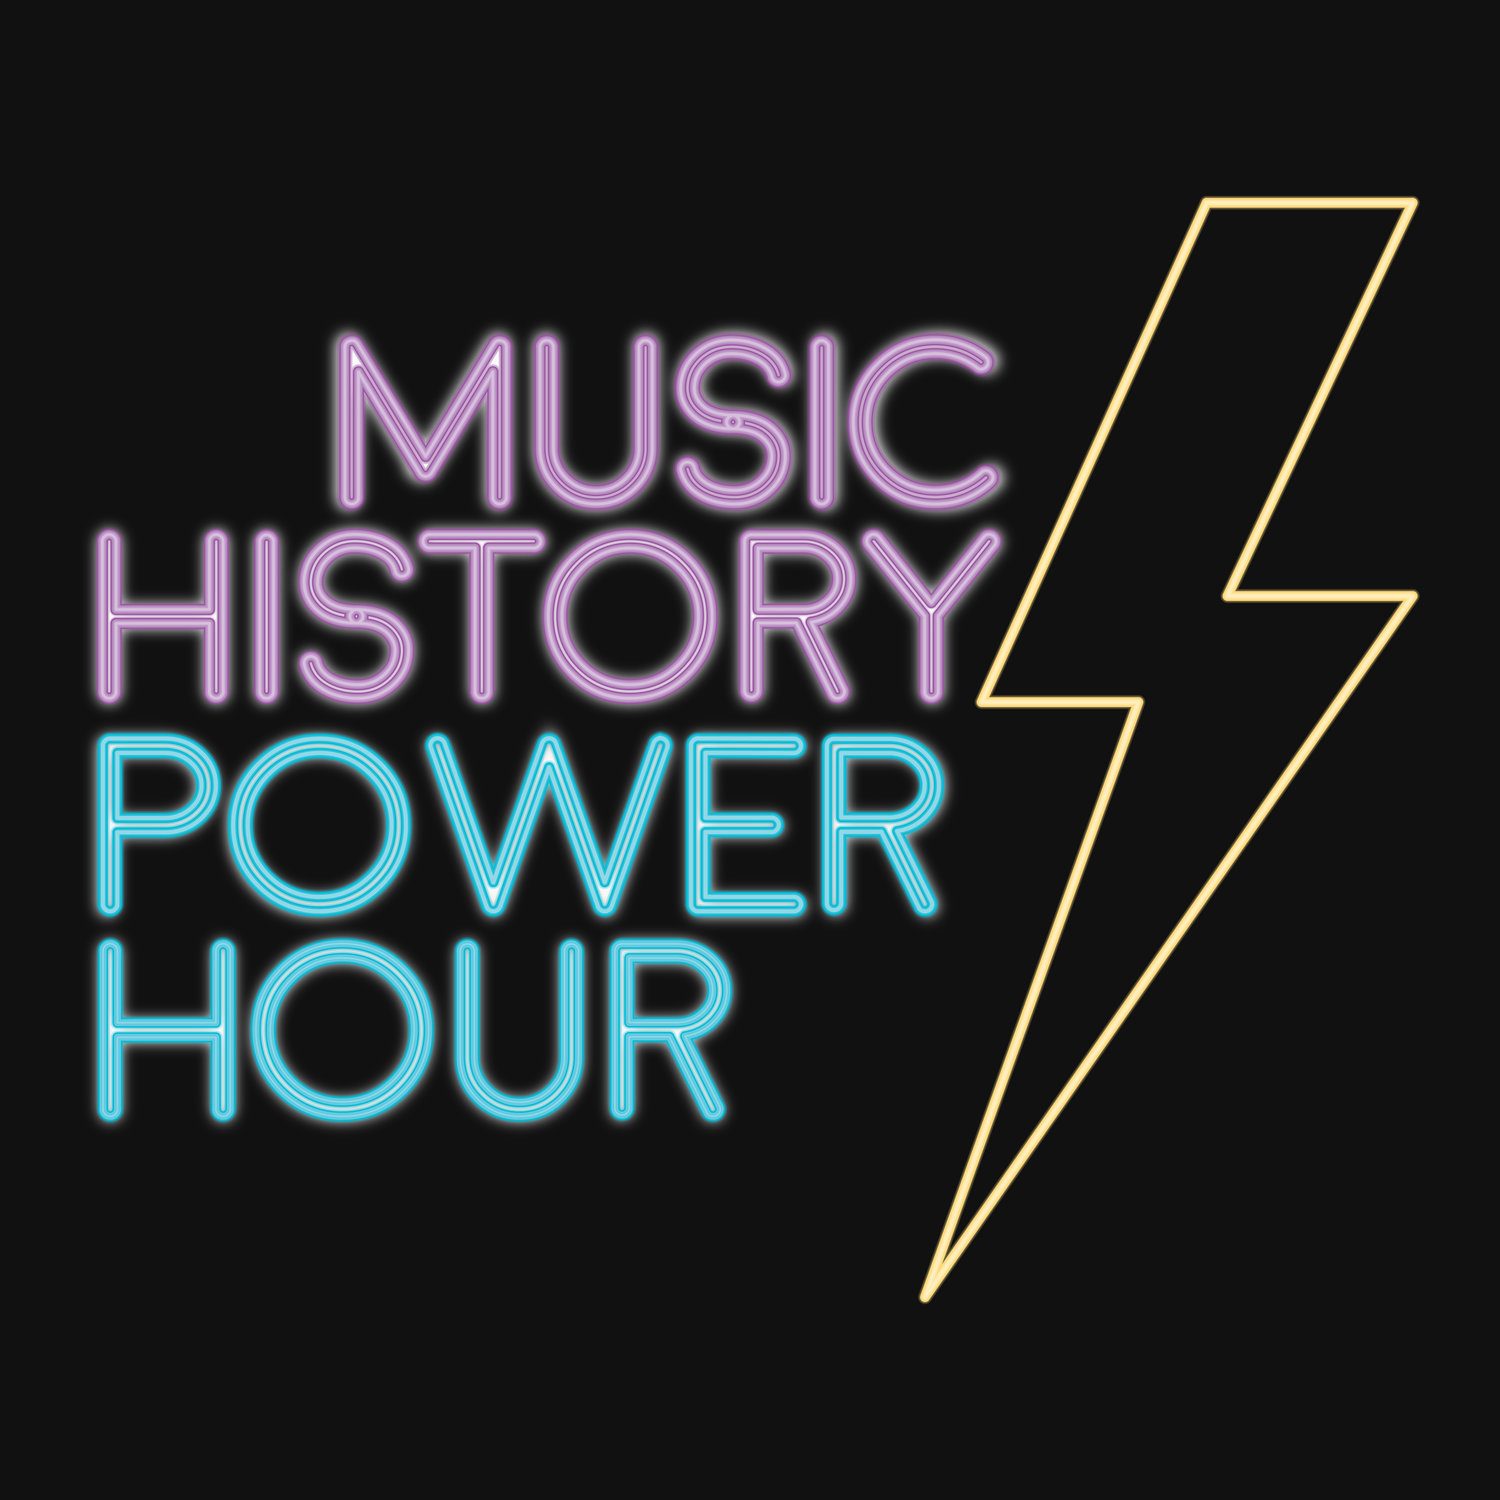 Music History Power Hour